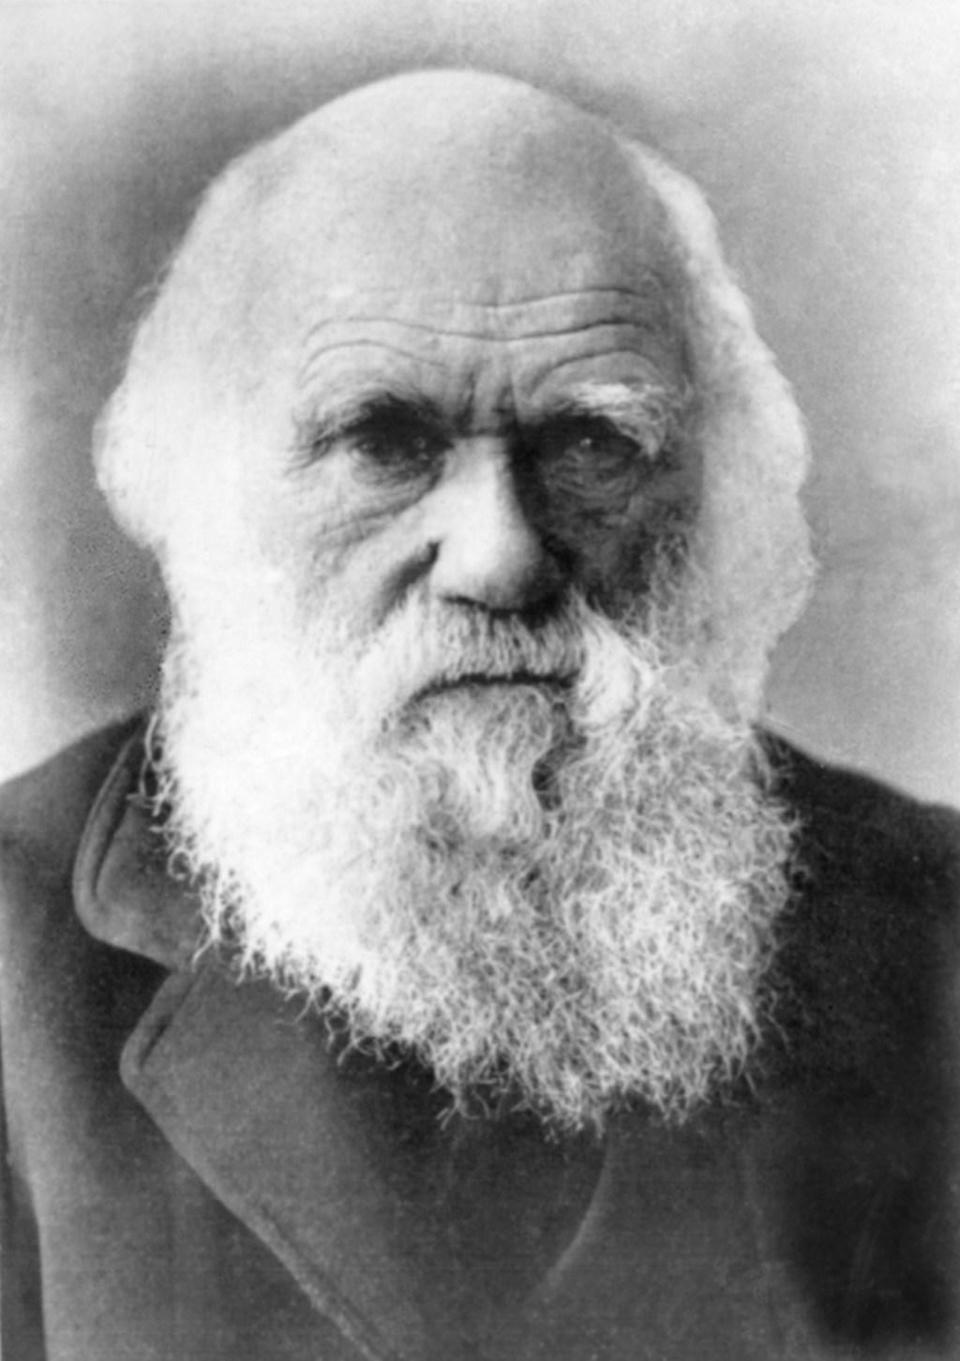 "Speaking of eating odd animals, the ""Father of Evolution,"" <strong>Charles Darwin</strong>, always had a taste for unusual cuisine—he was even a member of The Glutton Club while a student at Cambridge University. And according to <em>io9</em>, ""He <a href=""https://io9.gizmodo.com/what-did-charles-darwin-put-in-his-mouth-pretty-much-e-1687788345"" rel=""nofollow noopener"" target=""_blank"" data-ylk=""slk:ate the iguanas he studied"" class=""link rapid-noclick-resp"">ate the iguanas he studied</a> on the Galapagos. He ate armadillo, which he claimed tasted like duck. He ate puma. The lesser rhea, known to scientists as <em>Rhea darwinii</em>, got its name because Darwin sent the few bits of it he hadn't eaten to London."" According to <em>Foodbeast</em>, the <a href=""https://www.foodbeast.com/news/charles-darwin-eating-habits/"" rel=""nofollow noopener"" target=""_blank"" data-ylk=""slk:scientist had been enjoying"" class=""link rapid-noclick-resp"">scientist had been enjoying</a> the large flightless rhea bird for Christmas dinner."